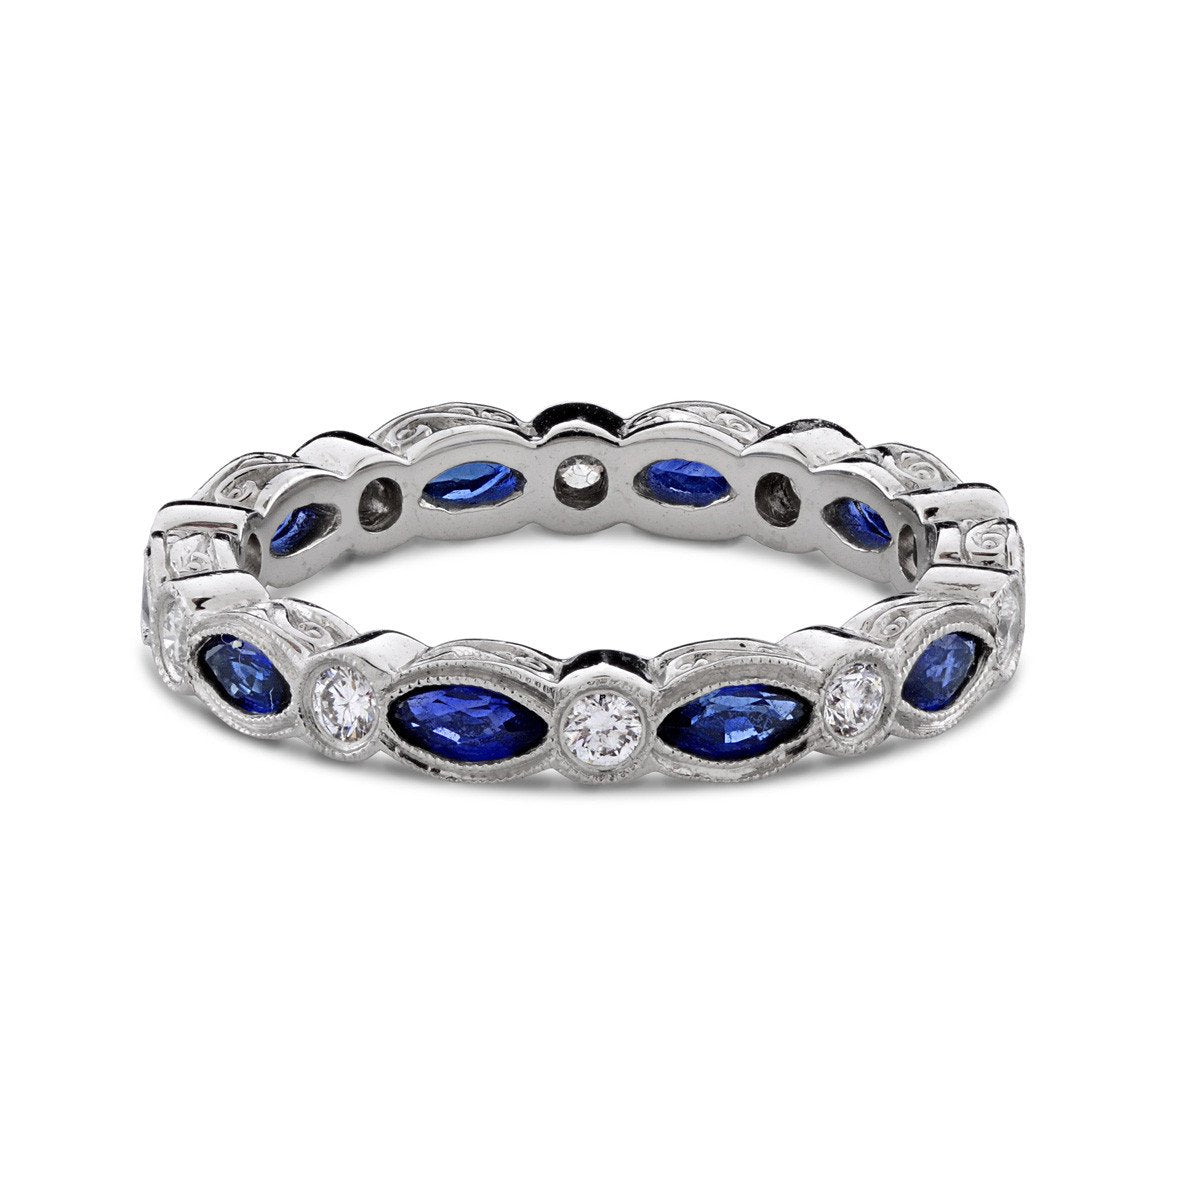 co m diamond and anniversary band p shane bands platinum wedding sapphire